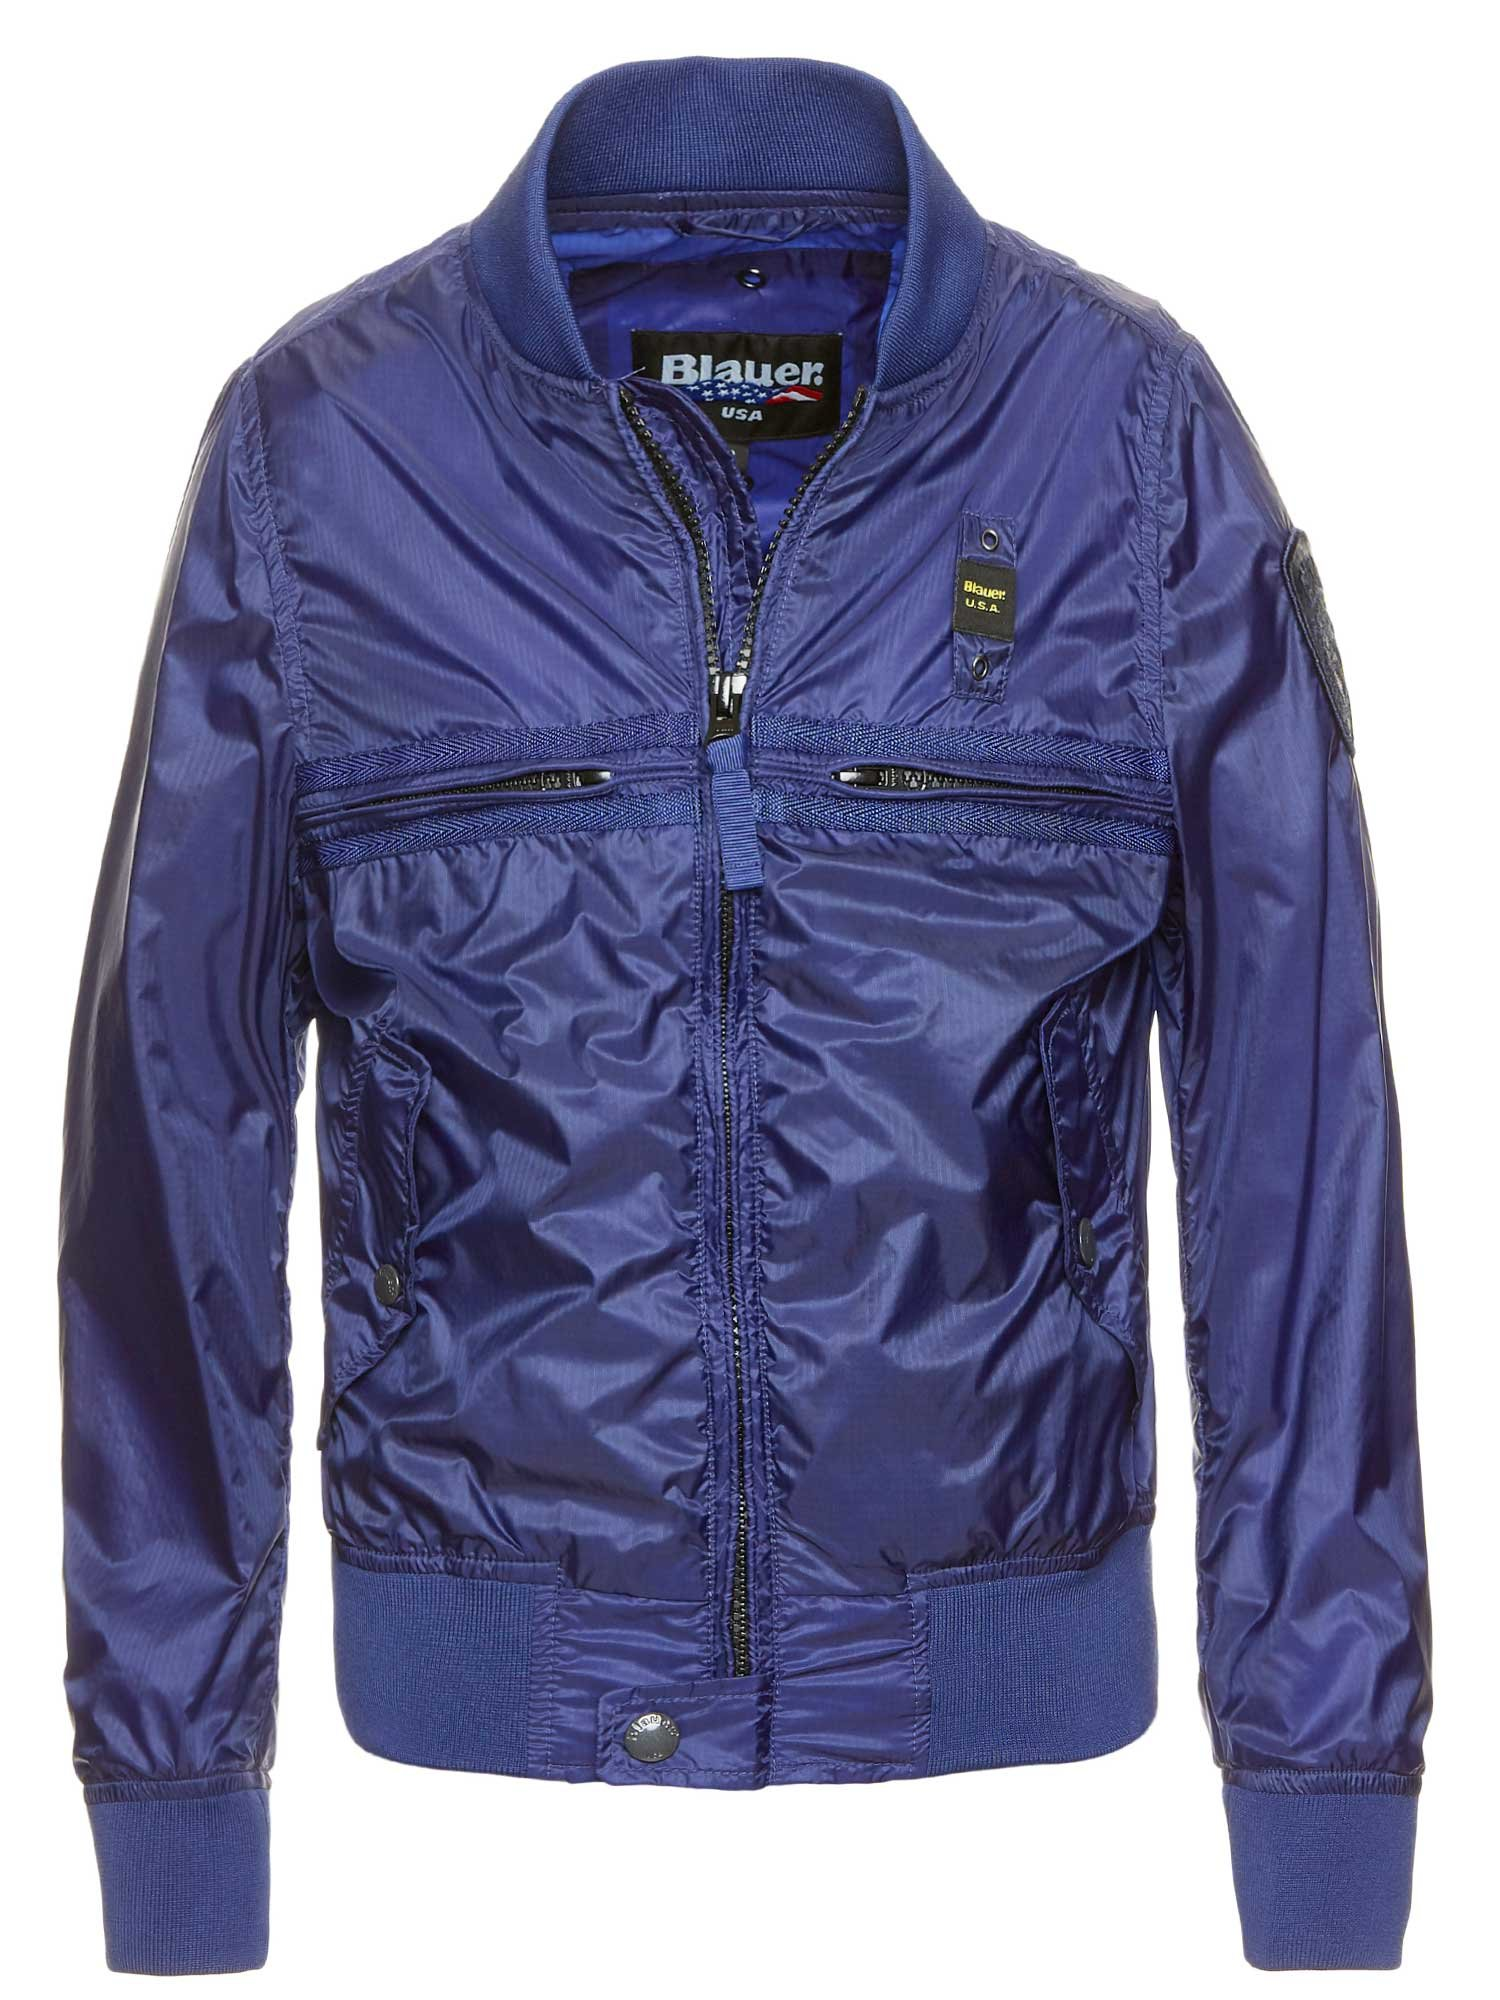 KID'S LINED BOMBER - Blauer